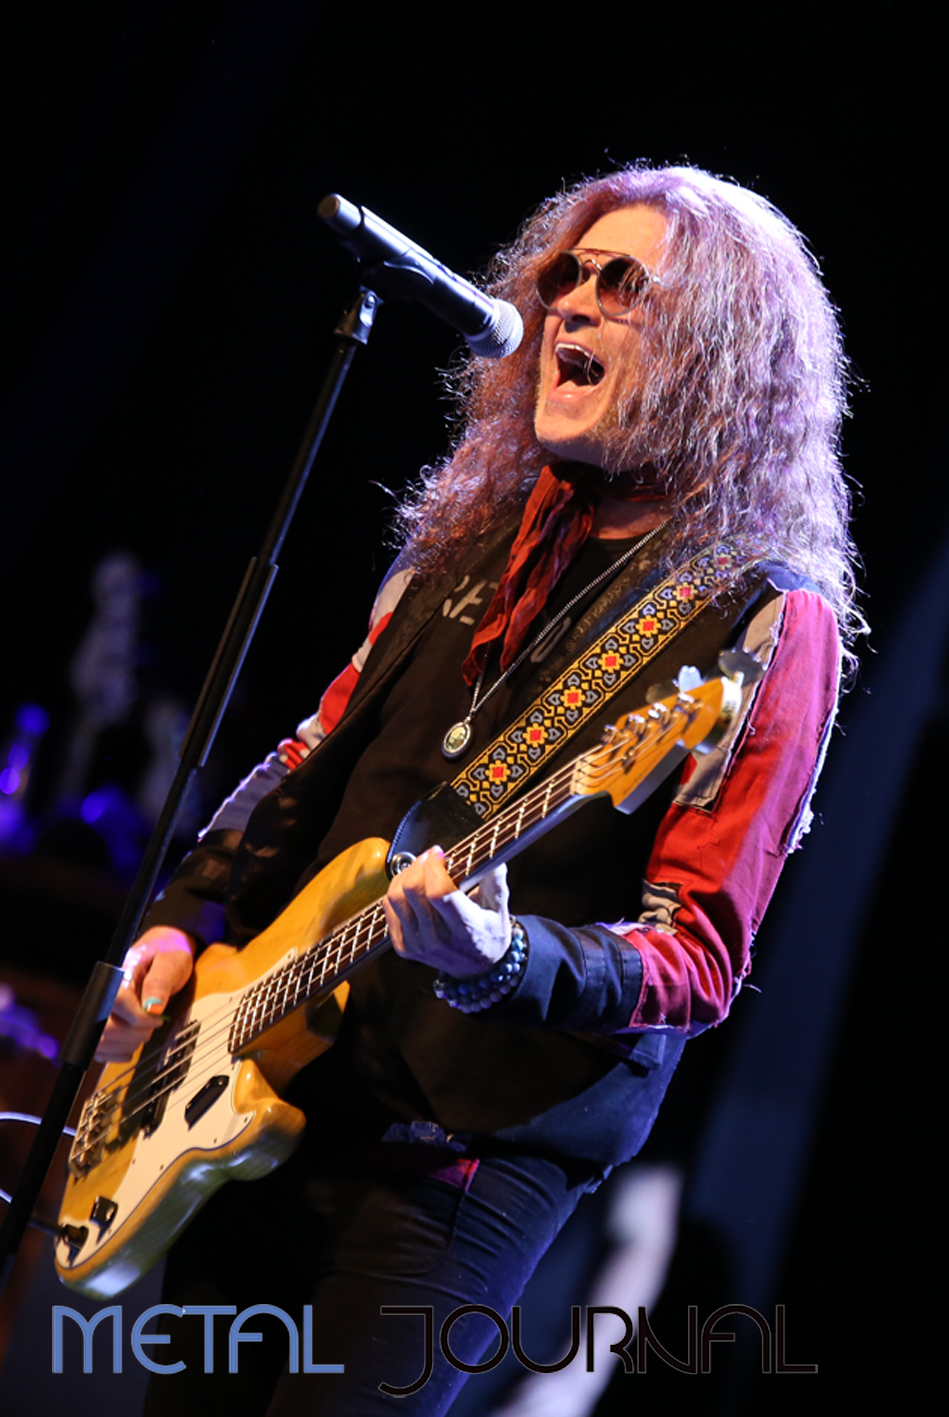 glenn hughes - metal journal pic 10